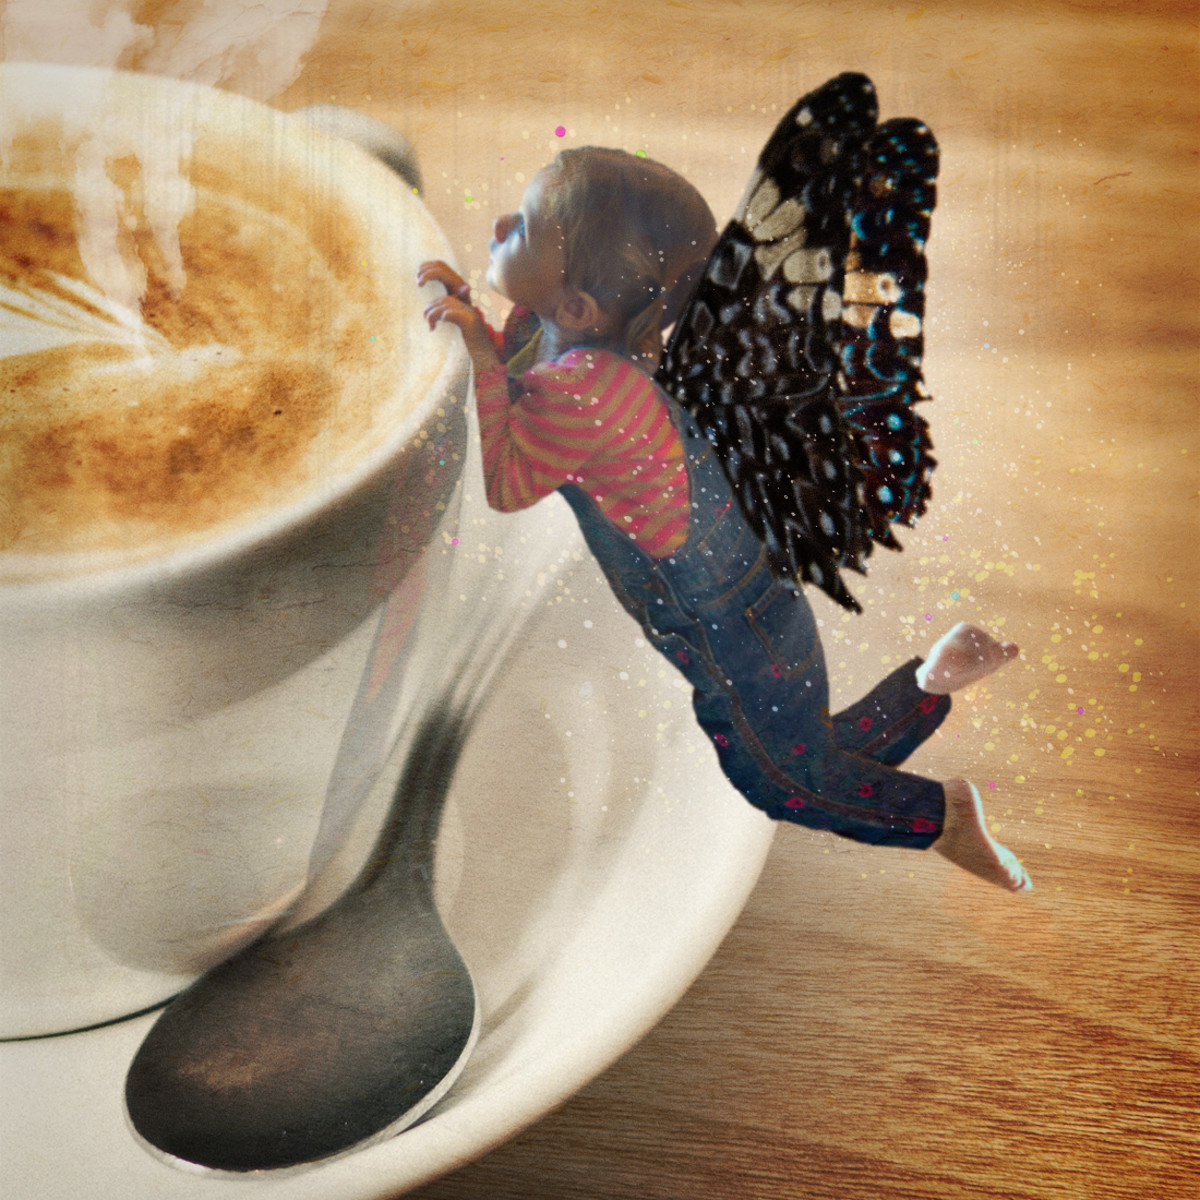 The Coffee Fairy is made with my little granddaughter Ivy.